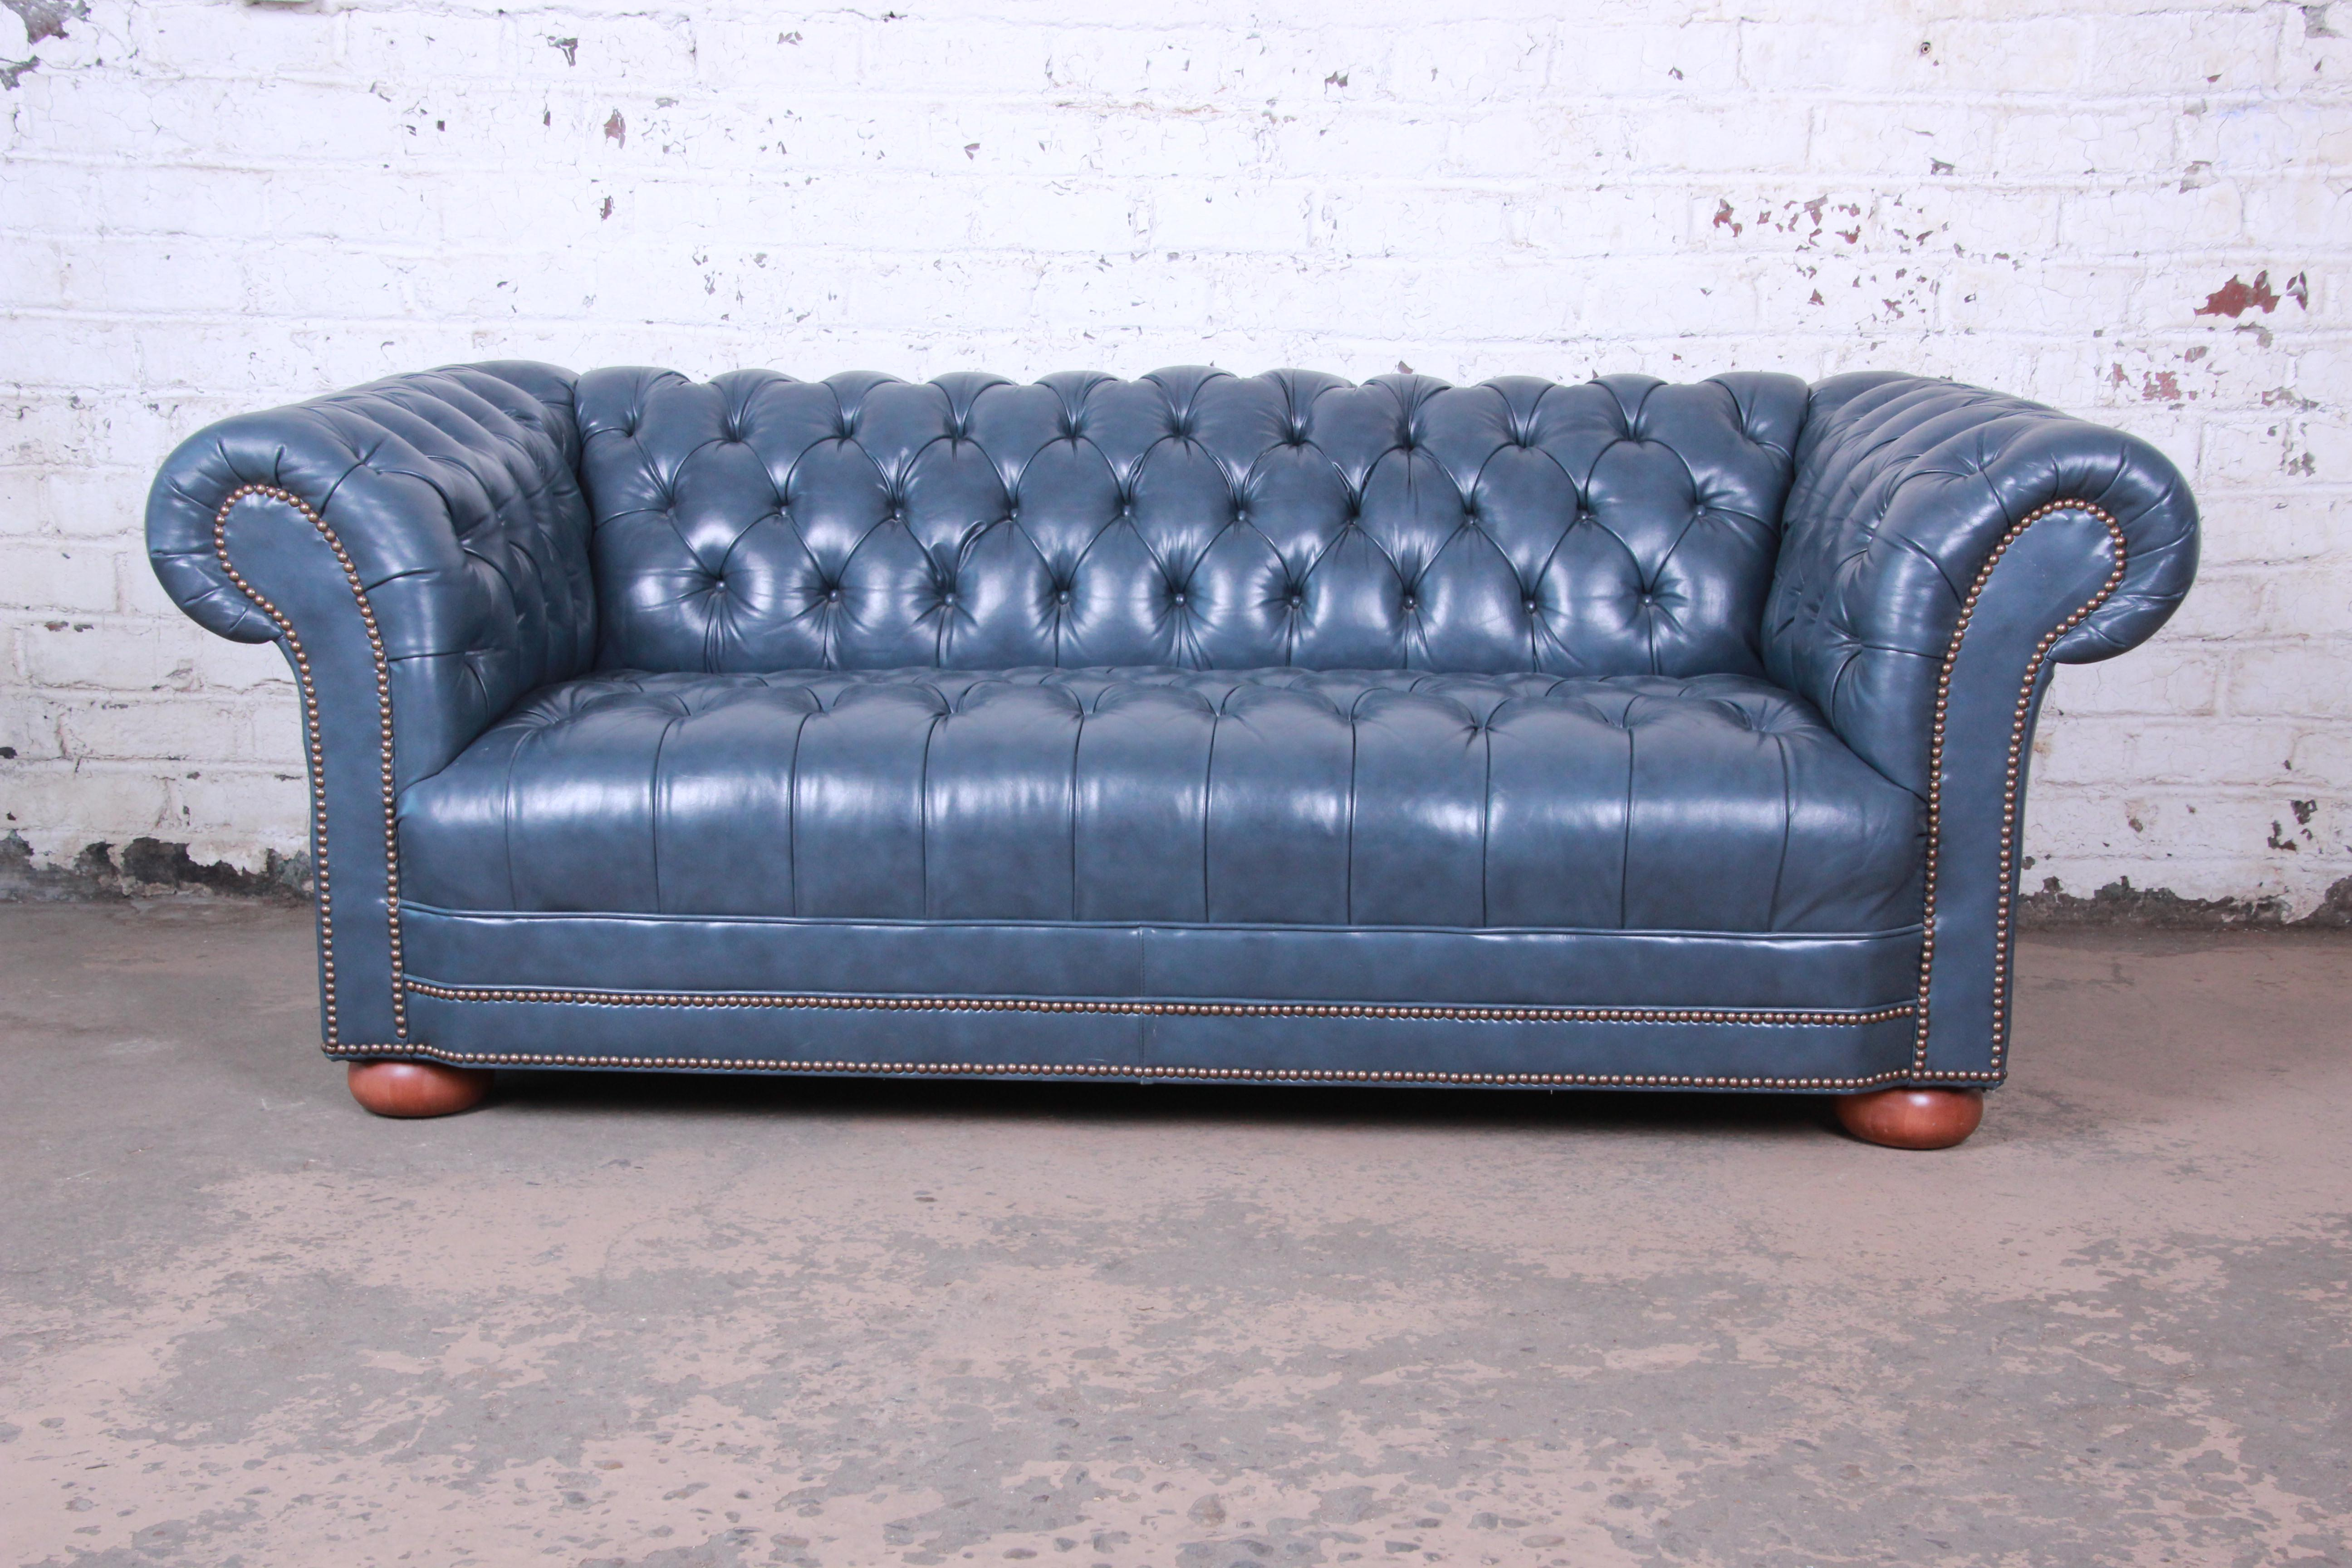 vintage tufted blue leather chesterfield sofa chairish rh chairish com chesterfield blue tufted leather sofa blue leather chesterfield sofa uk